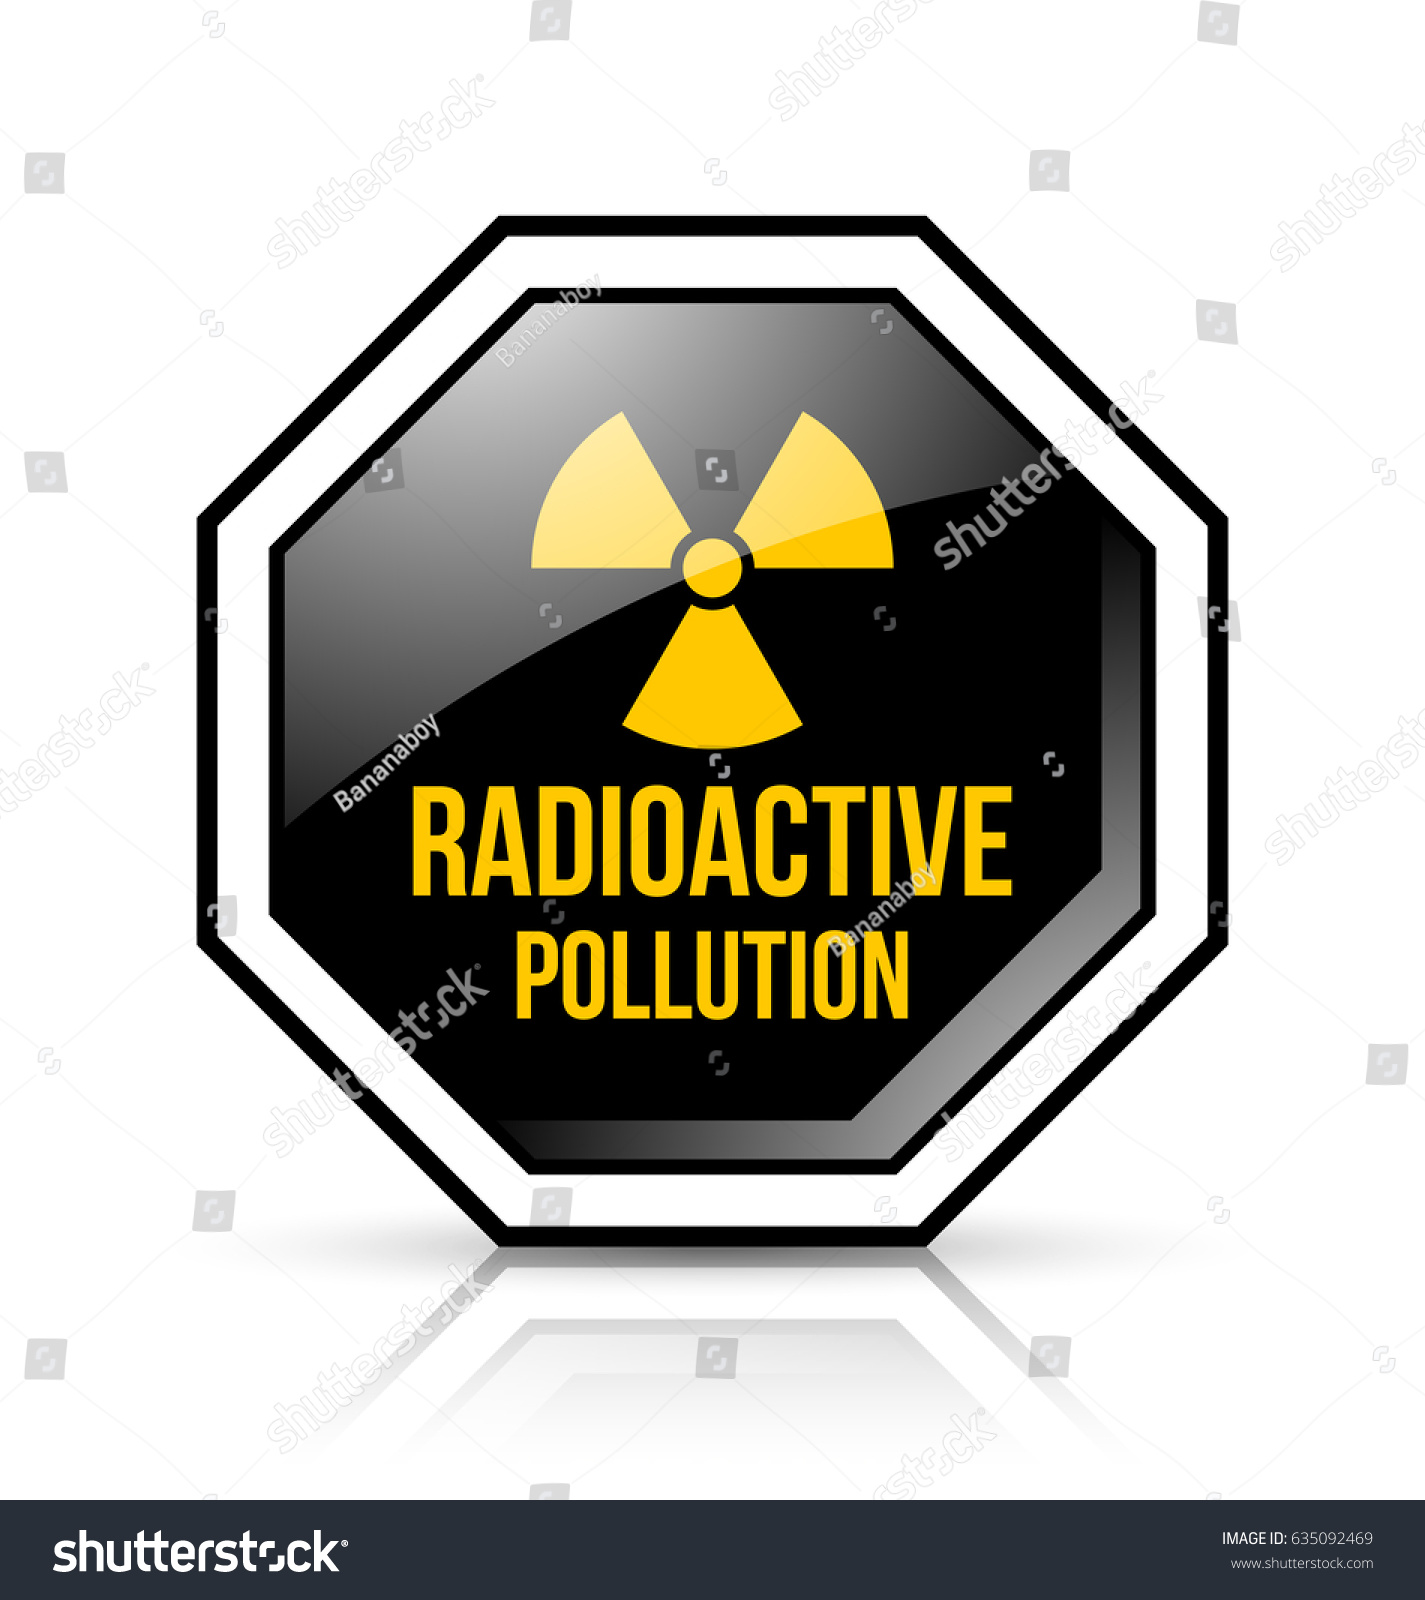 Black yellow radioactive pollution sign nuclear stock vector black and yellow radioactive pollution sign with nuclear symbol on white background biocorpaavc Gallery